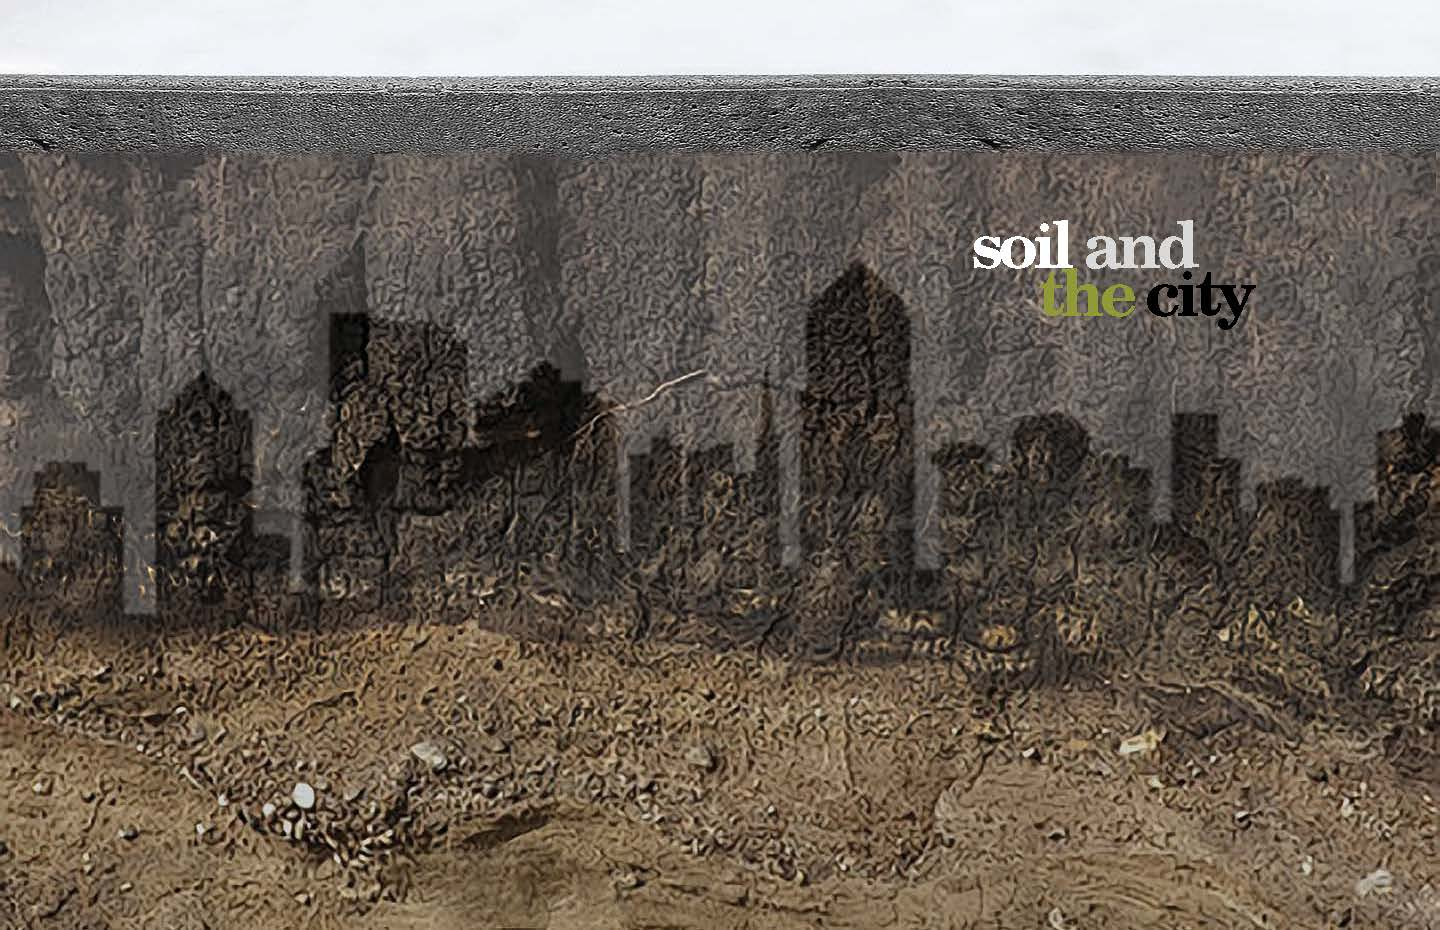 soil-in-the-city-title-image